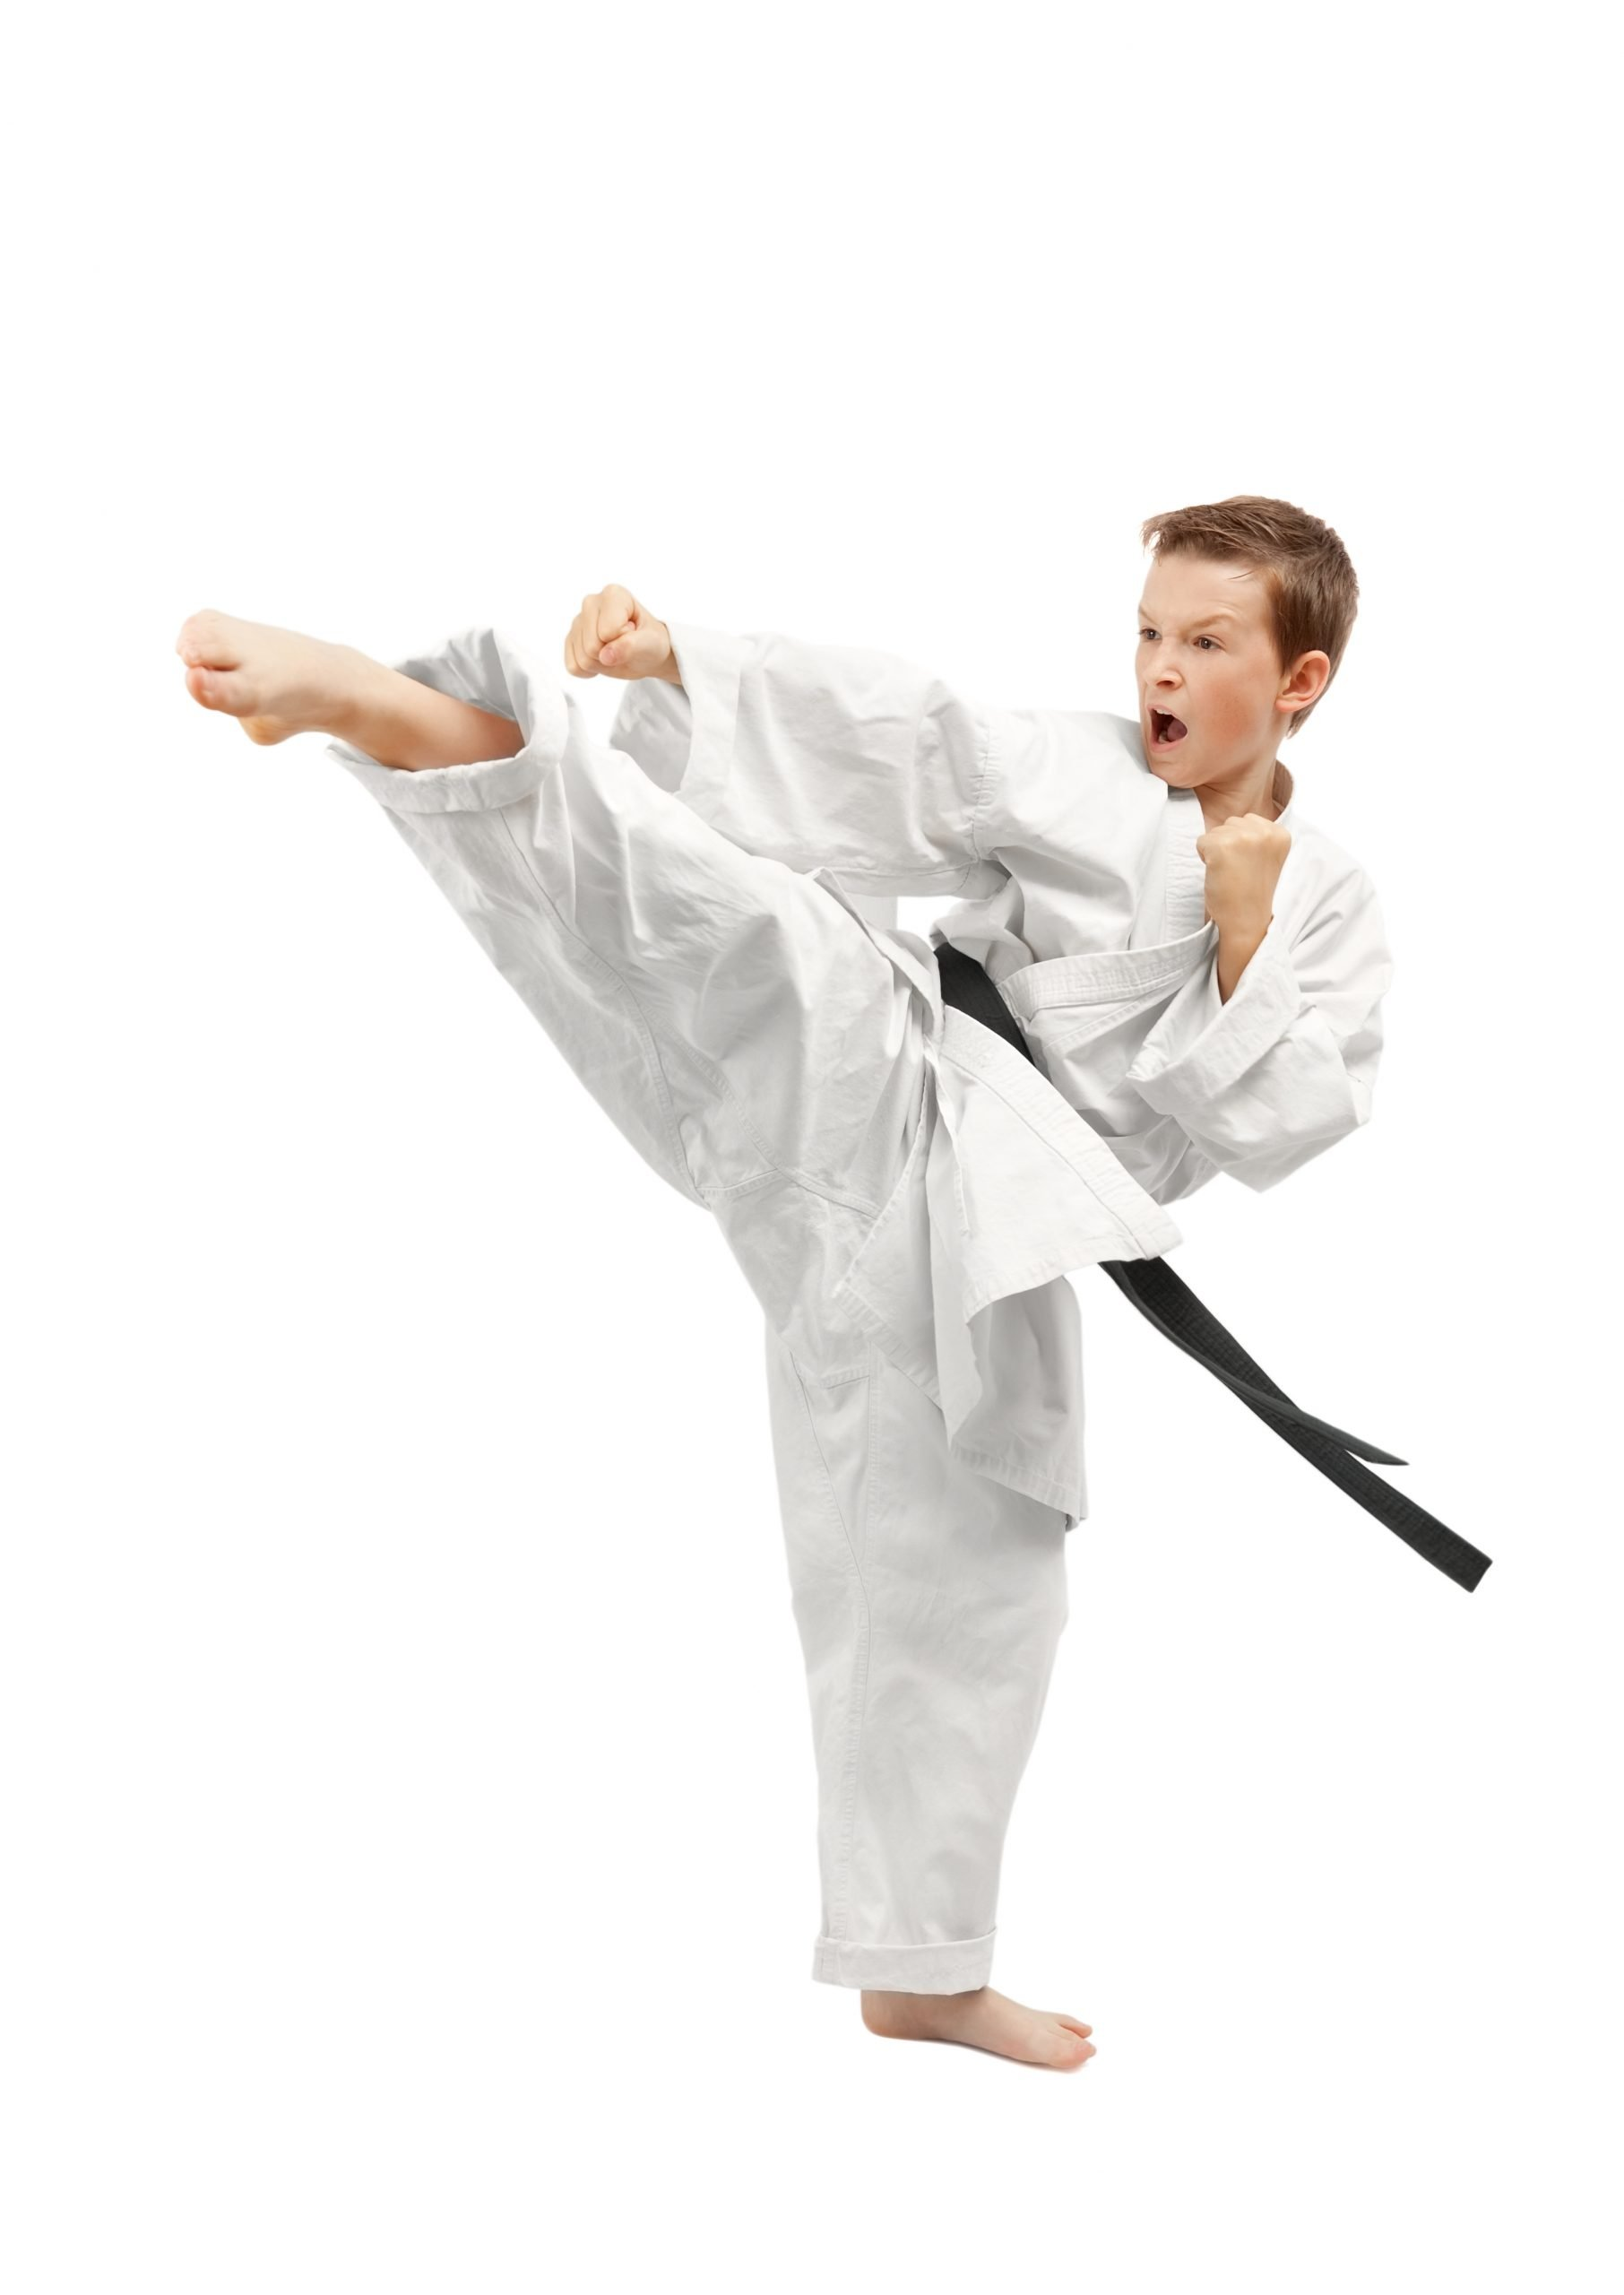 youth martial arts and strength building, discipline